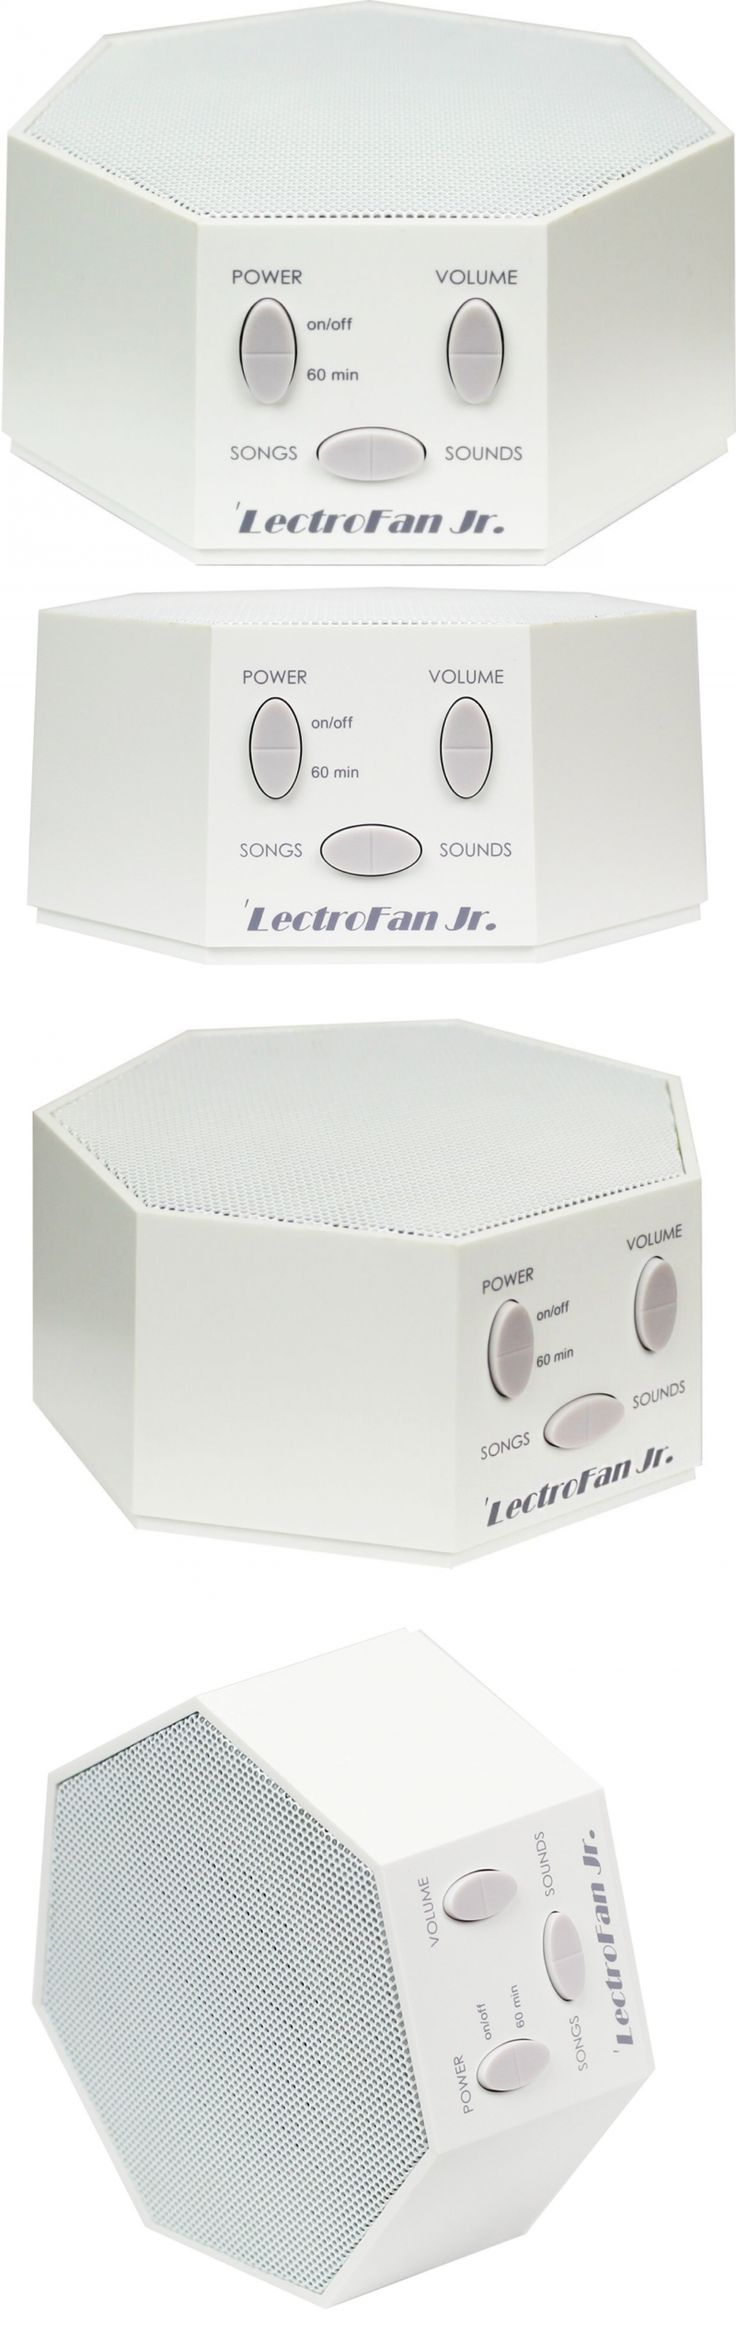 Sound Therapy: Lectrofan Jr. - White Noise Sound Machine With 6 Fan And 6 White Noise Sounds Pl -> BUY IT NOW ONLY: $41.57 on eBay!